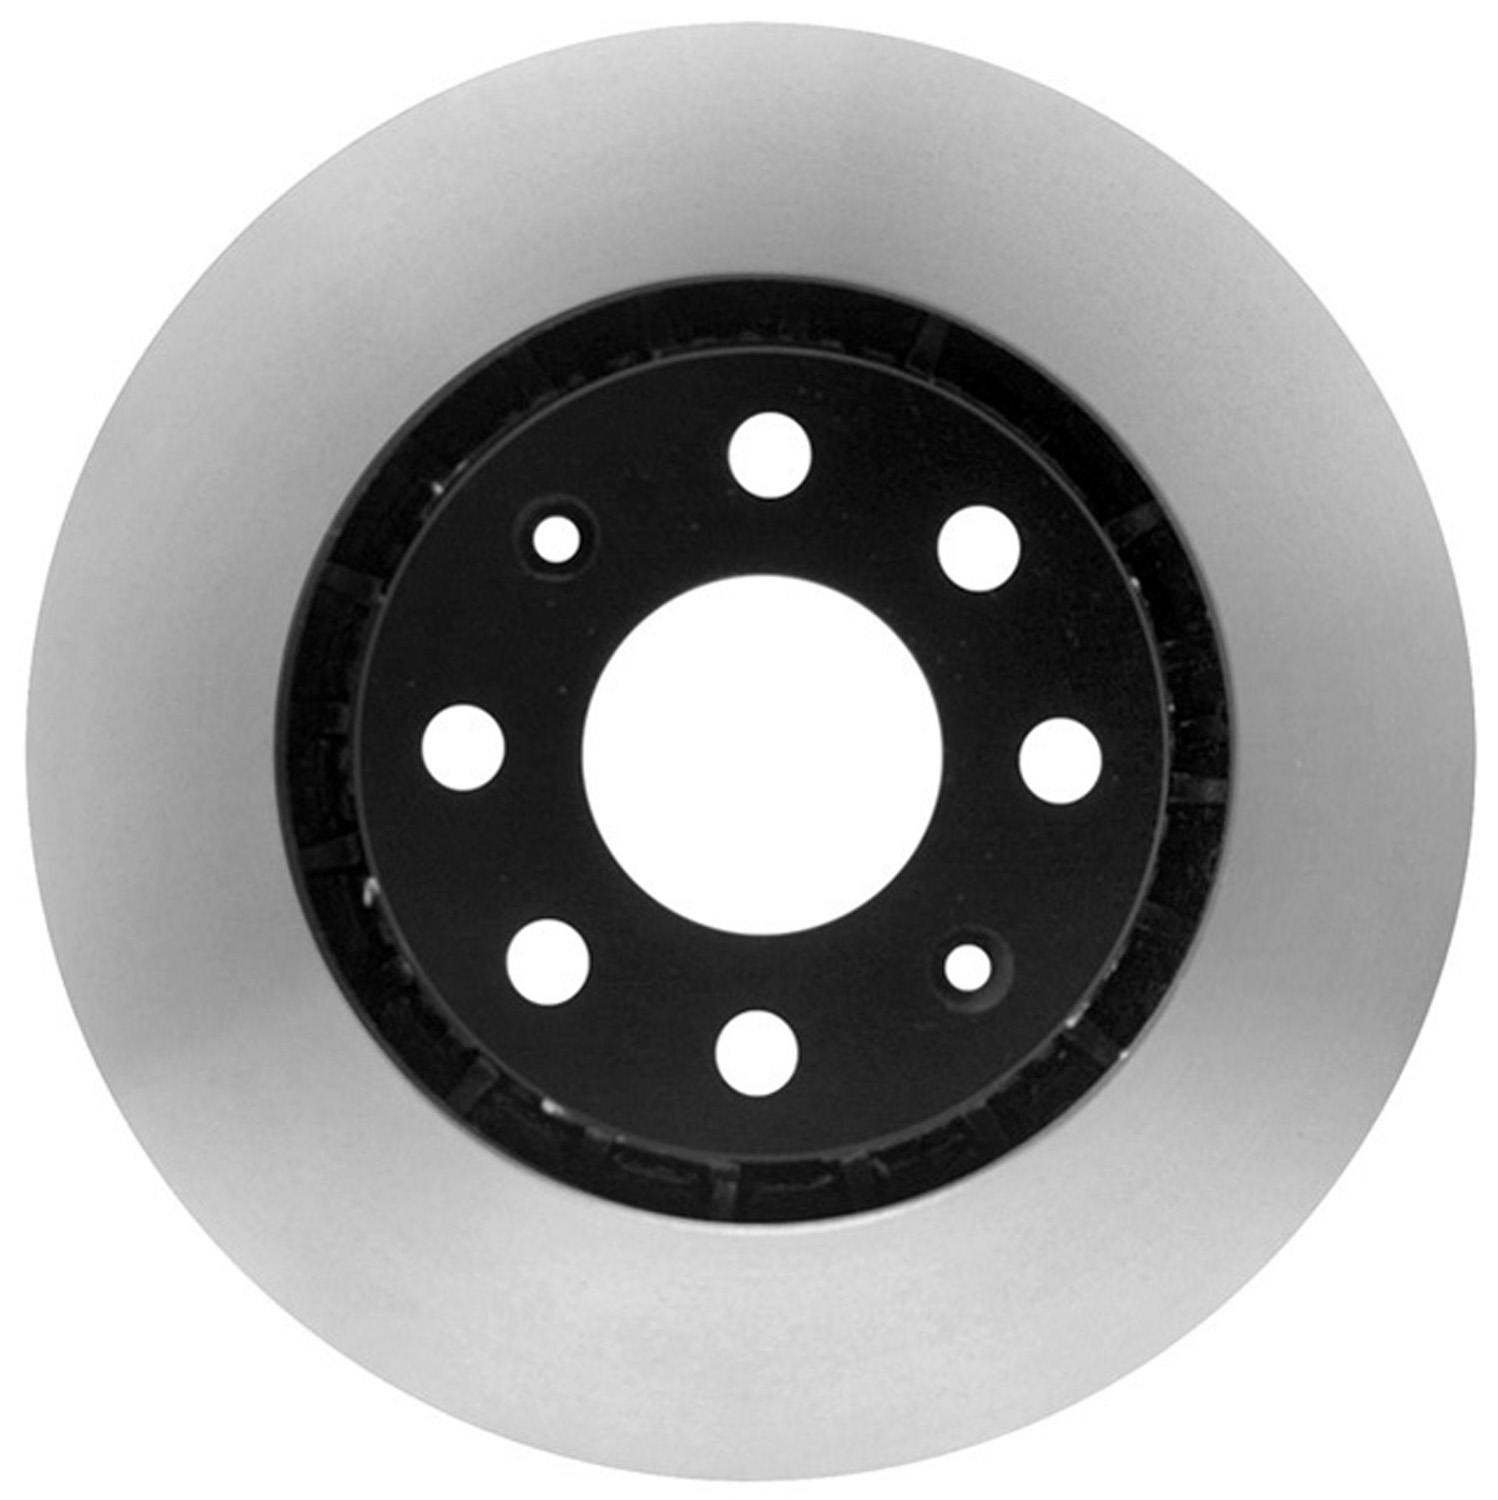 ACDELCO PROFESSIONAL BRAKES - Disc Brake Rotor (Front) - ADU 18A2324